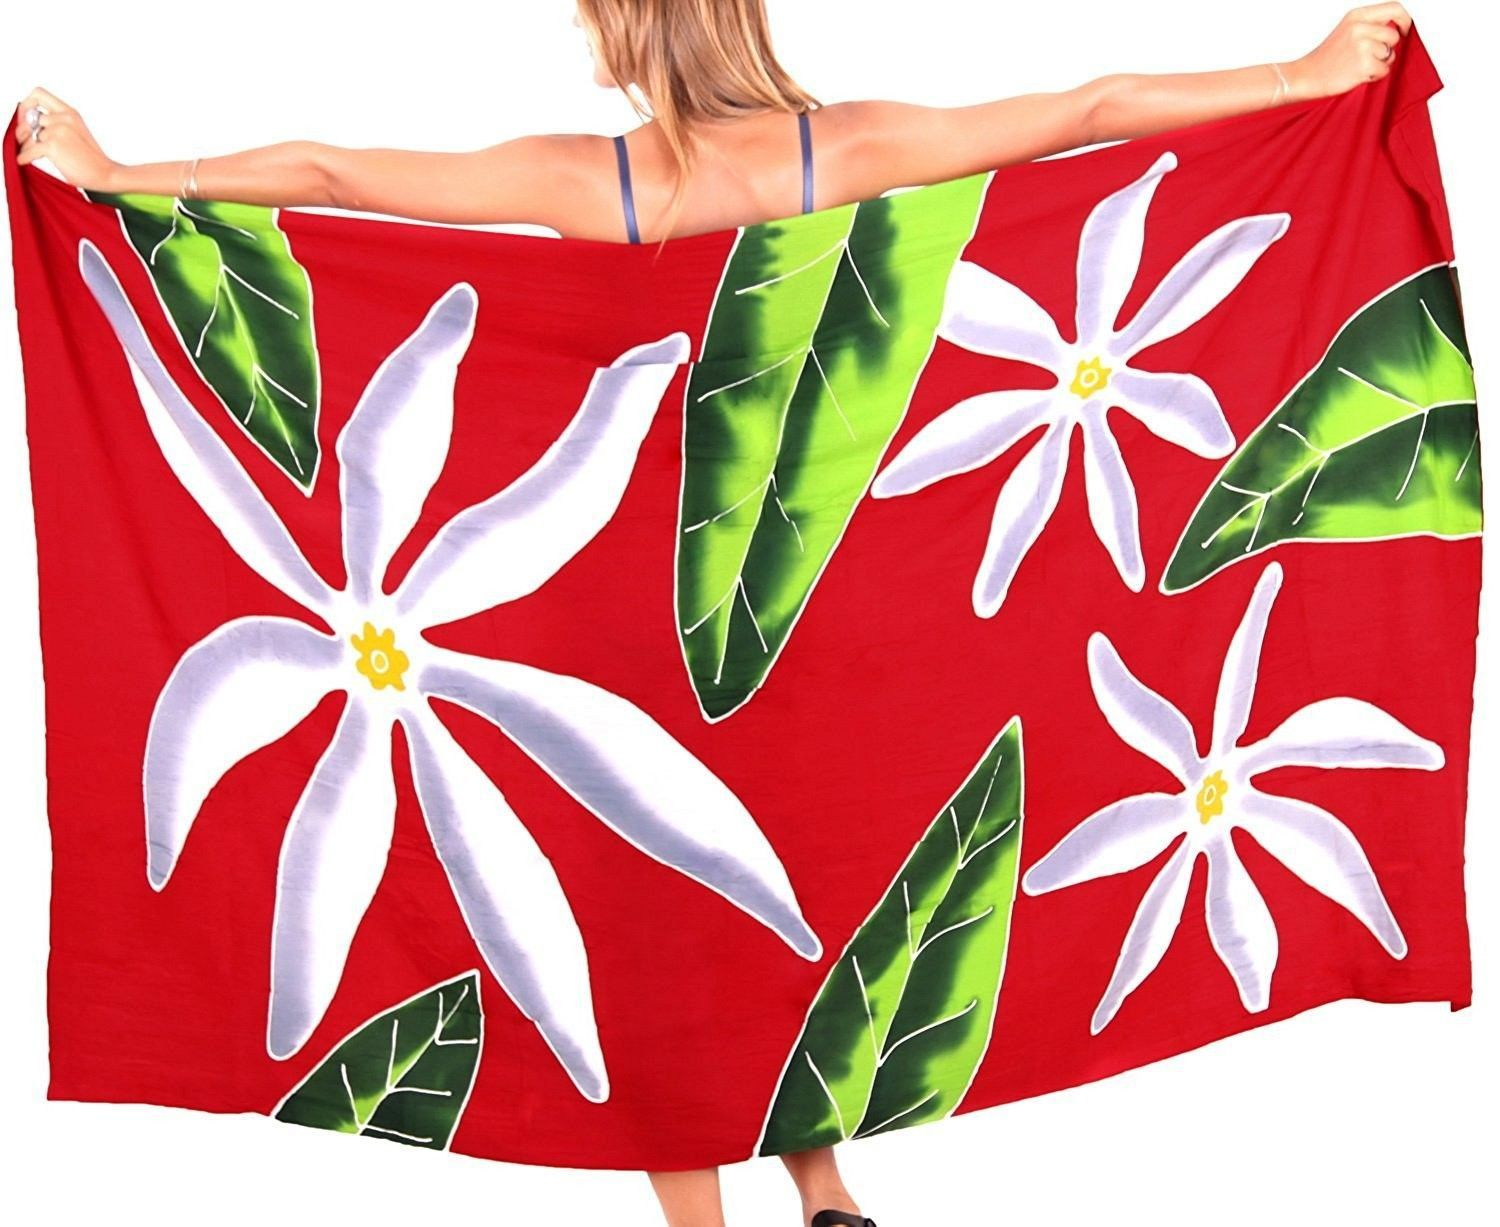 Women's Clothing, Swimsuits & Cover Ups, Cover-Ups, Wrap Pareo Beachwear Skirt Cover up Bathing Suit Swimwear Womens Sarong Swimsuit - Red - C5129WXCASL   #fashion #Swimsuits #CoverUps #women     Source by zrinec    Source by mariaadeckerus #Beachwear #Beachwear red #Clothing #Cover #Coverups #Pareo #skirt #Swimsuits #Ups #womens #Wrap